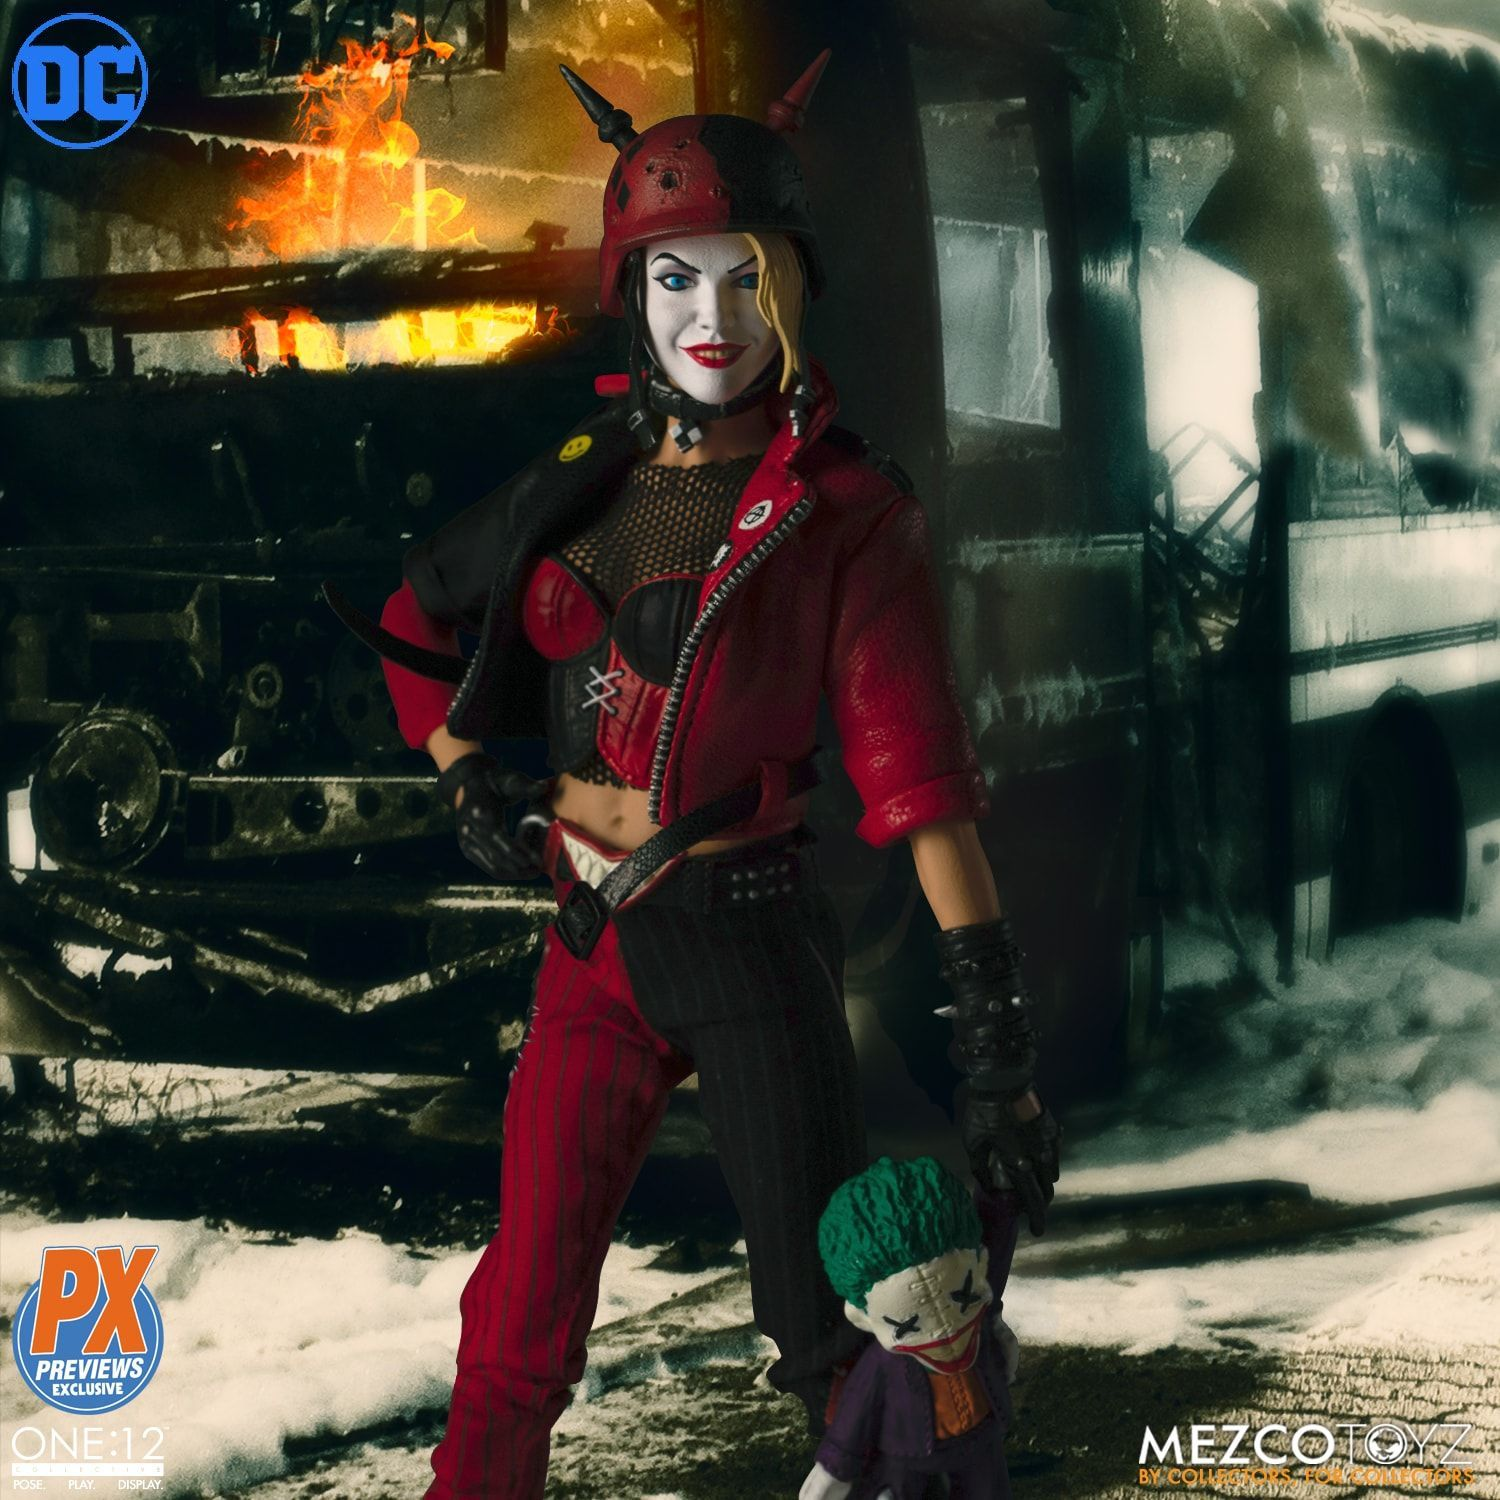 [ONE12] HarleyQuinn_PlayForKeeps_DC (PX) 007.jpg